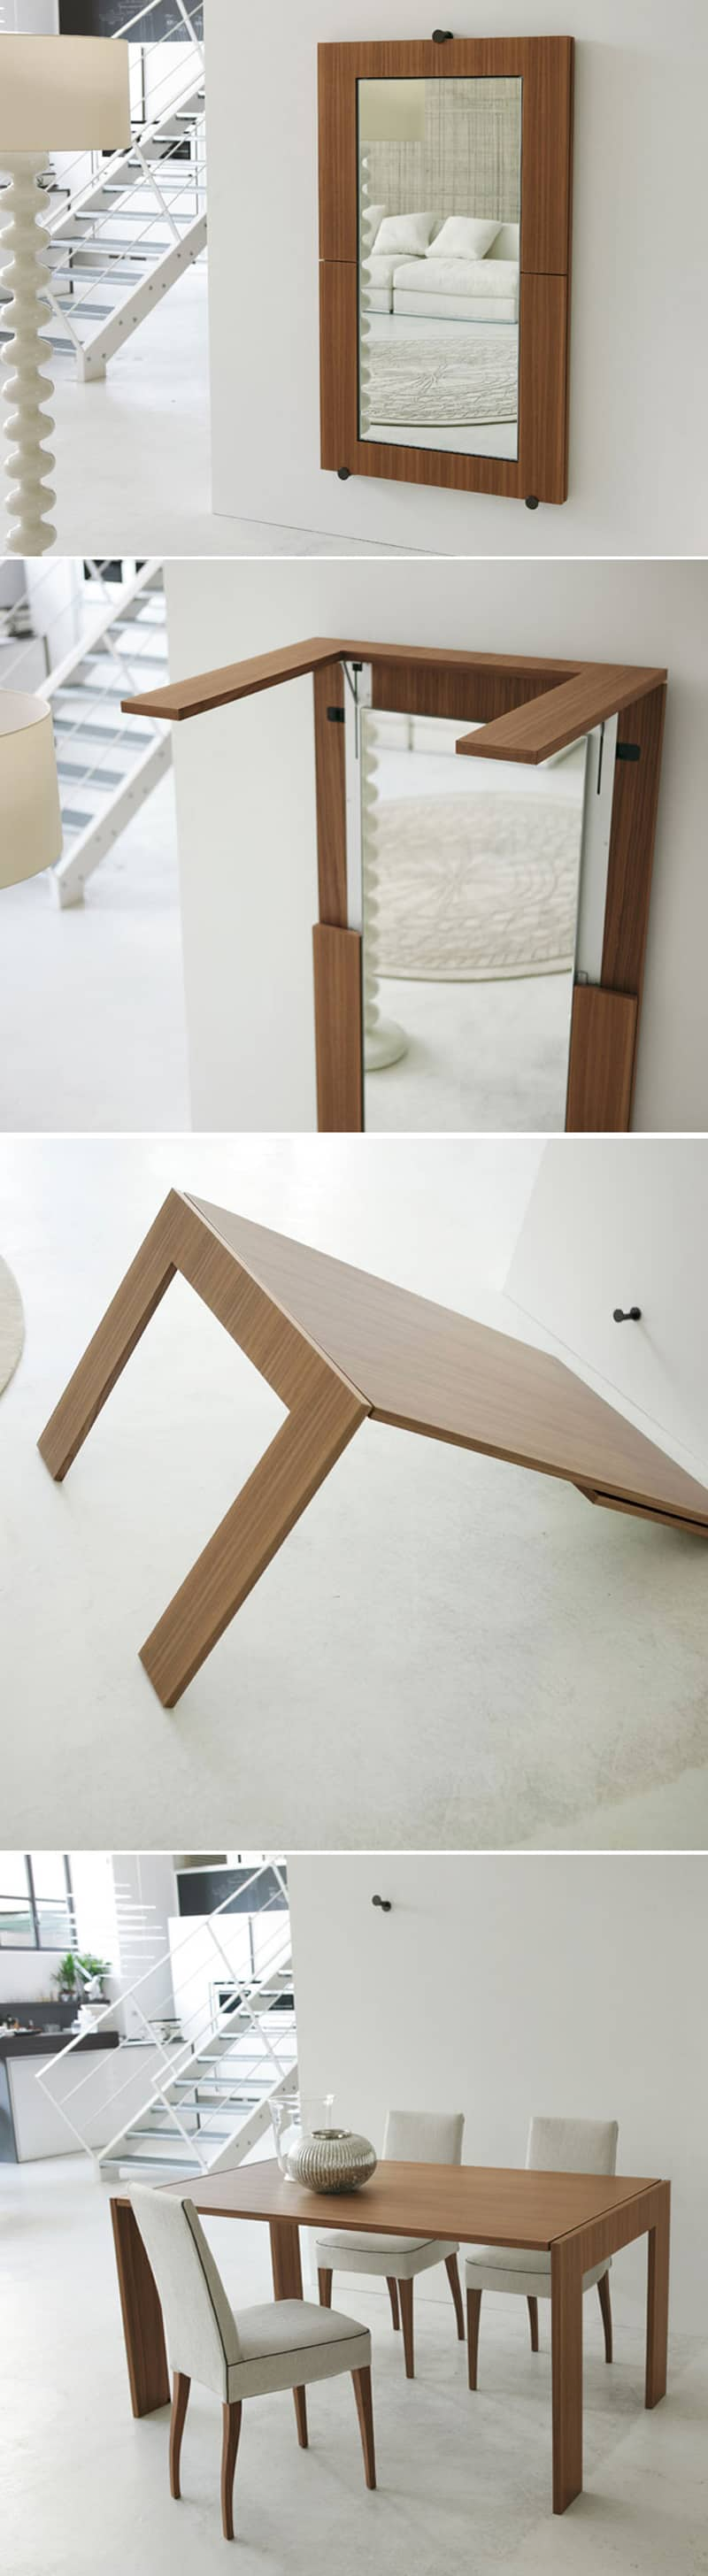 extendable-dining-tables_ DESIGNRULZ (11)